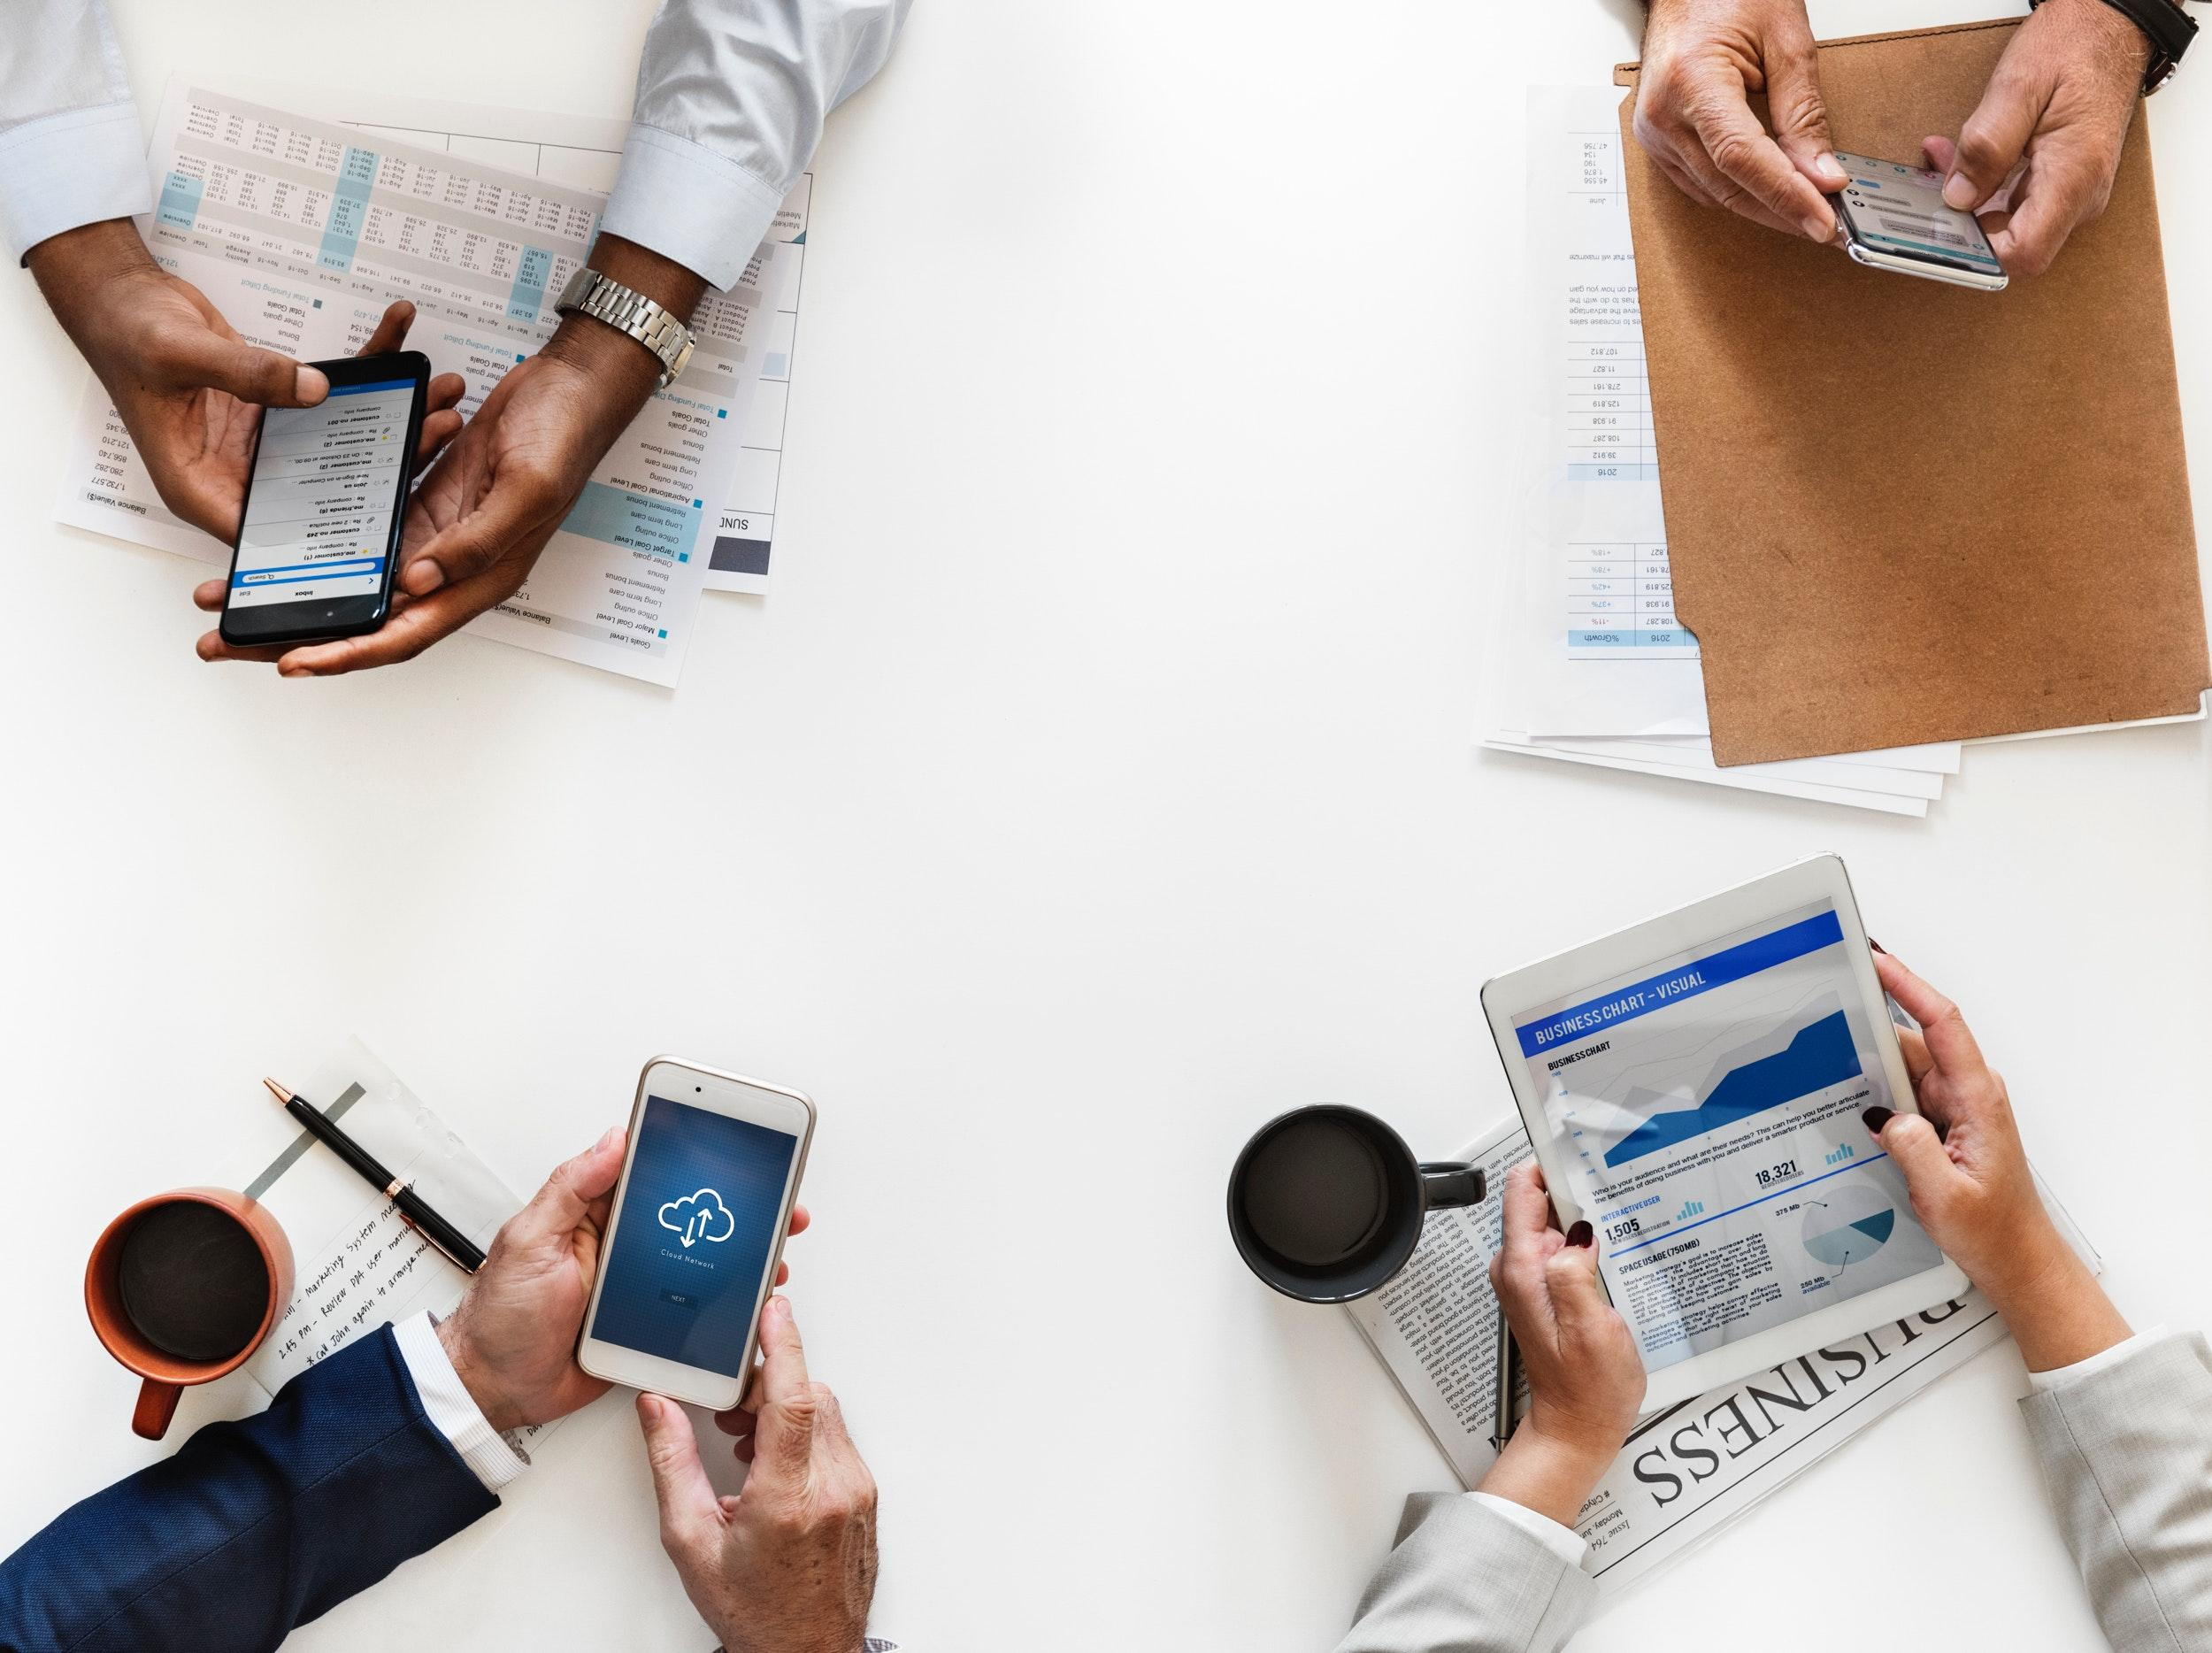 Is it difficult to build a mobile app dragon blogger technology so what exactly should you start with when working on a mobile application hiring mobile app development services or doing everything by yourself solutioingenieria Image collections